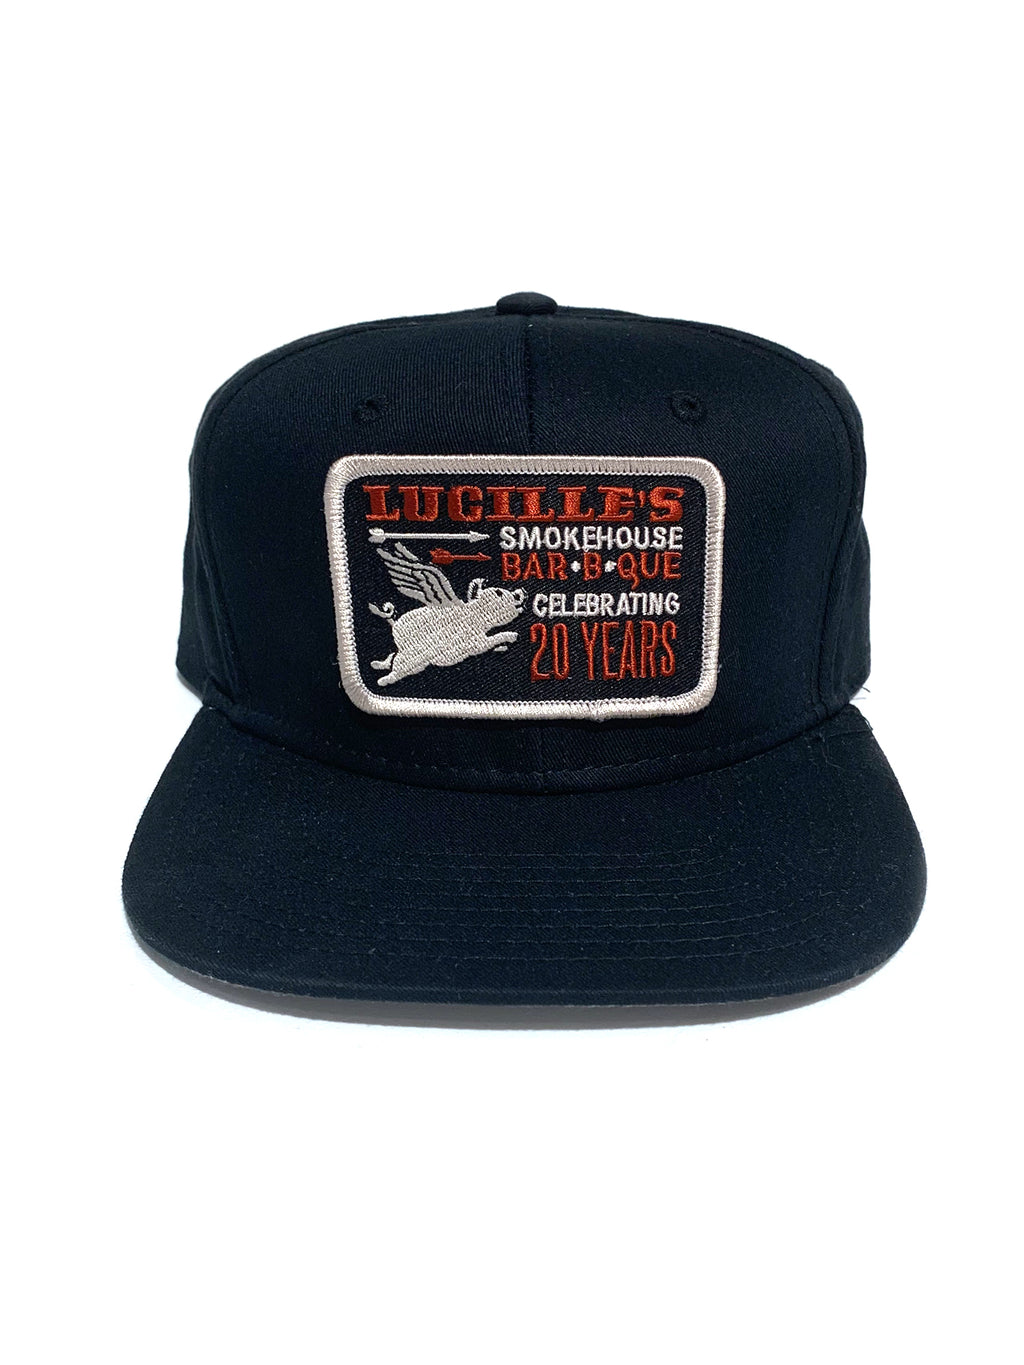 20 years Hat - Black